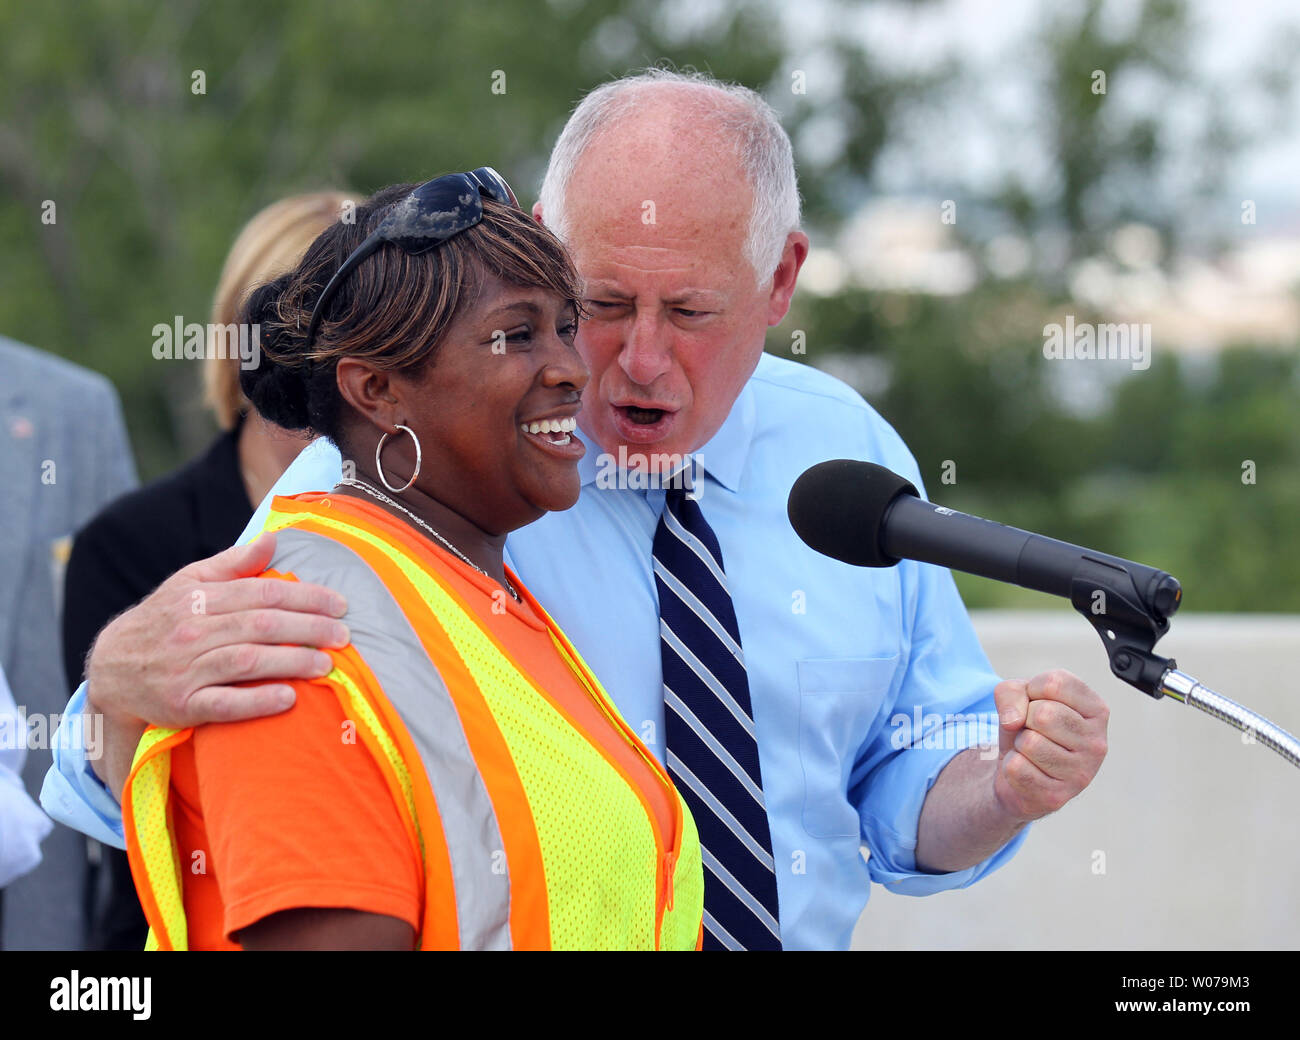 Illinois Governor Pat Quinn joins Illinois Department Transportation worker Theresa Foote as they talk about the diverse workforce that have worked on Mississippi River Bridge in Brooklyn, Illinois on July 15, 2013. The bridge will be named the Stan Musial Veterans Bridge, will connect Illinois to Missouri and has created 3,400 jobs. The bridge should be open by March 2014.    UPI/Bill Greenblatt Stock Photo